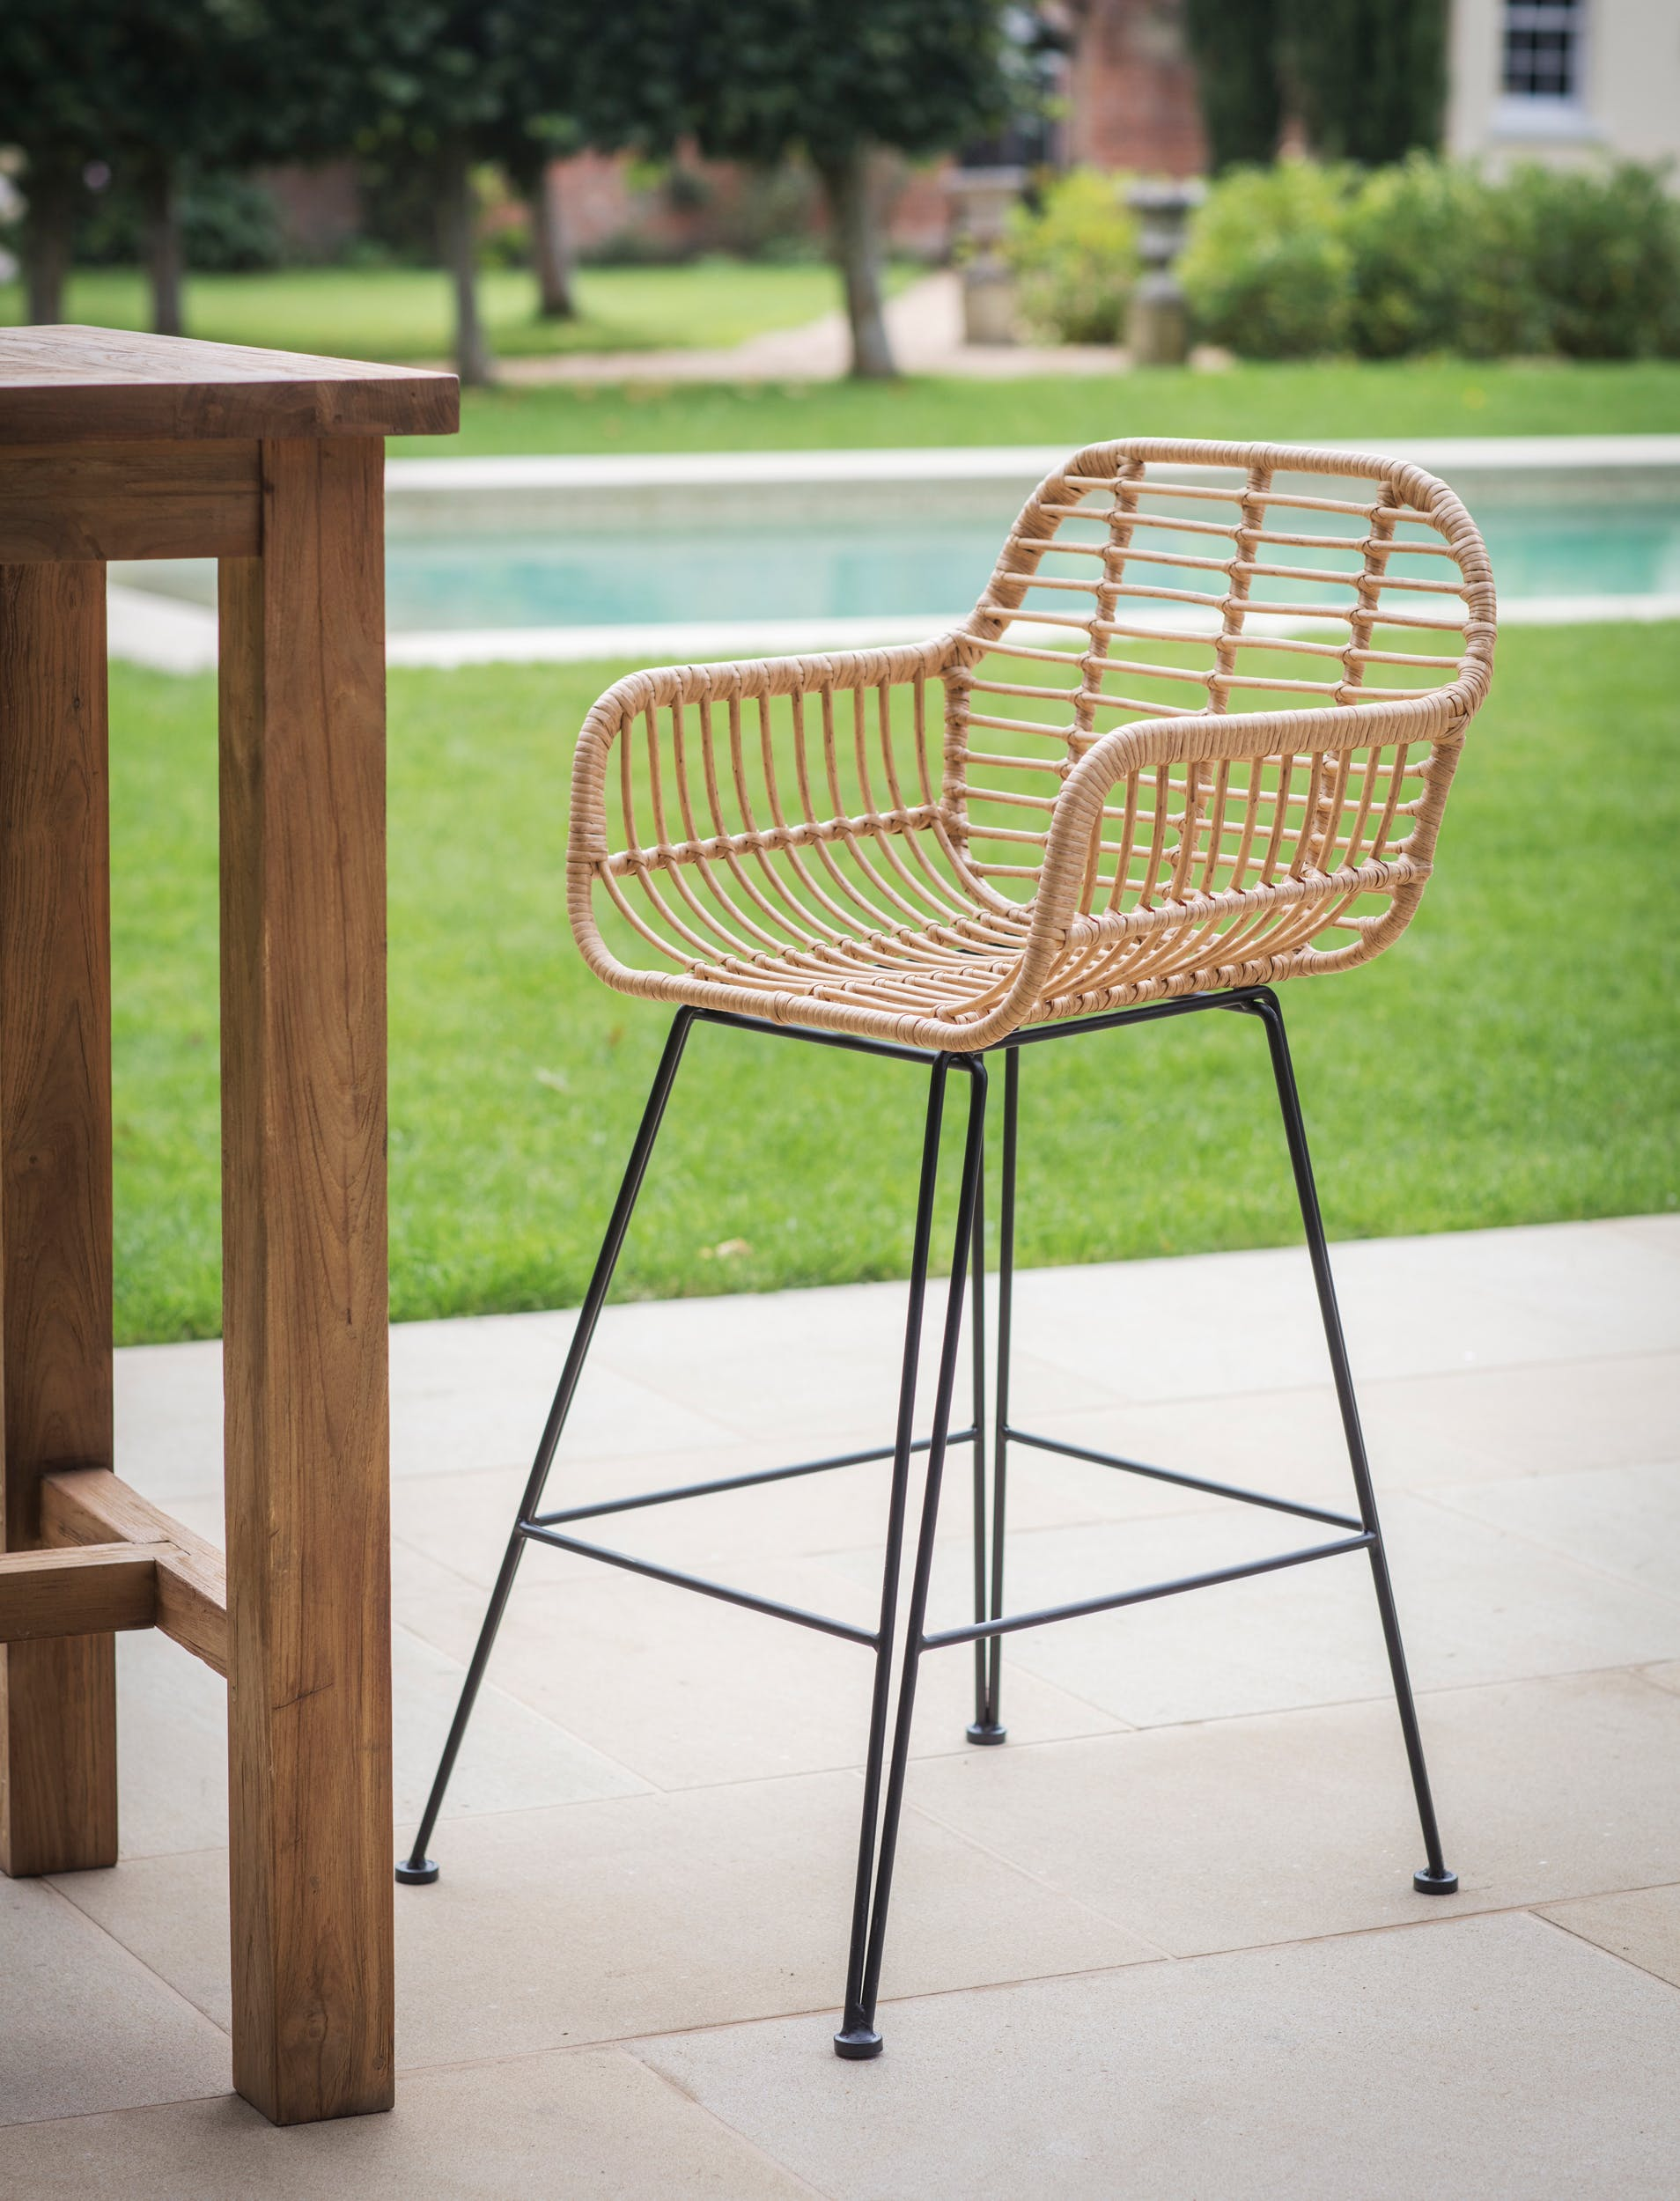 All-weather Bamboo Hampstead Bar Stool | Garden Trading